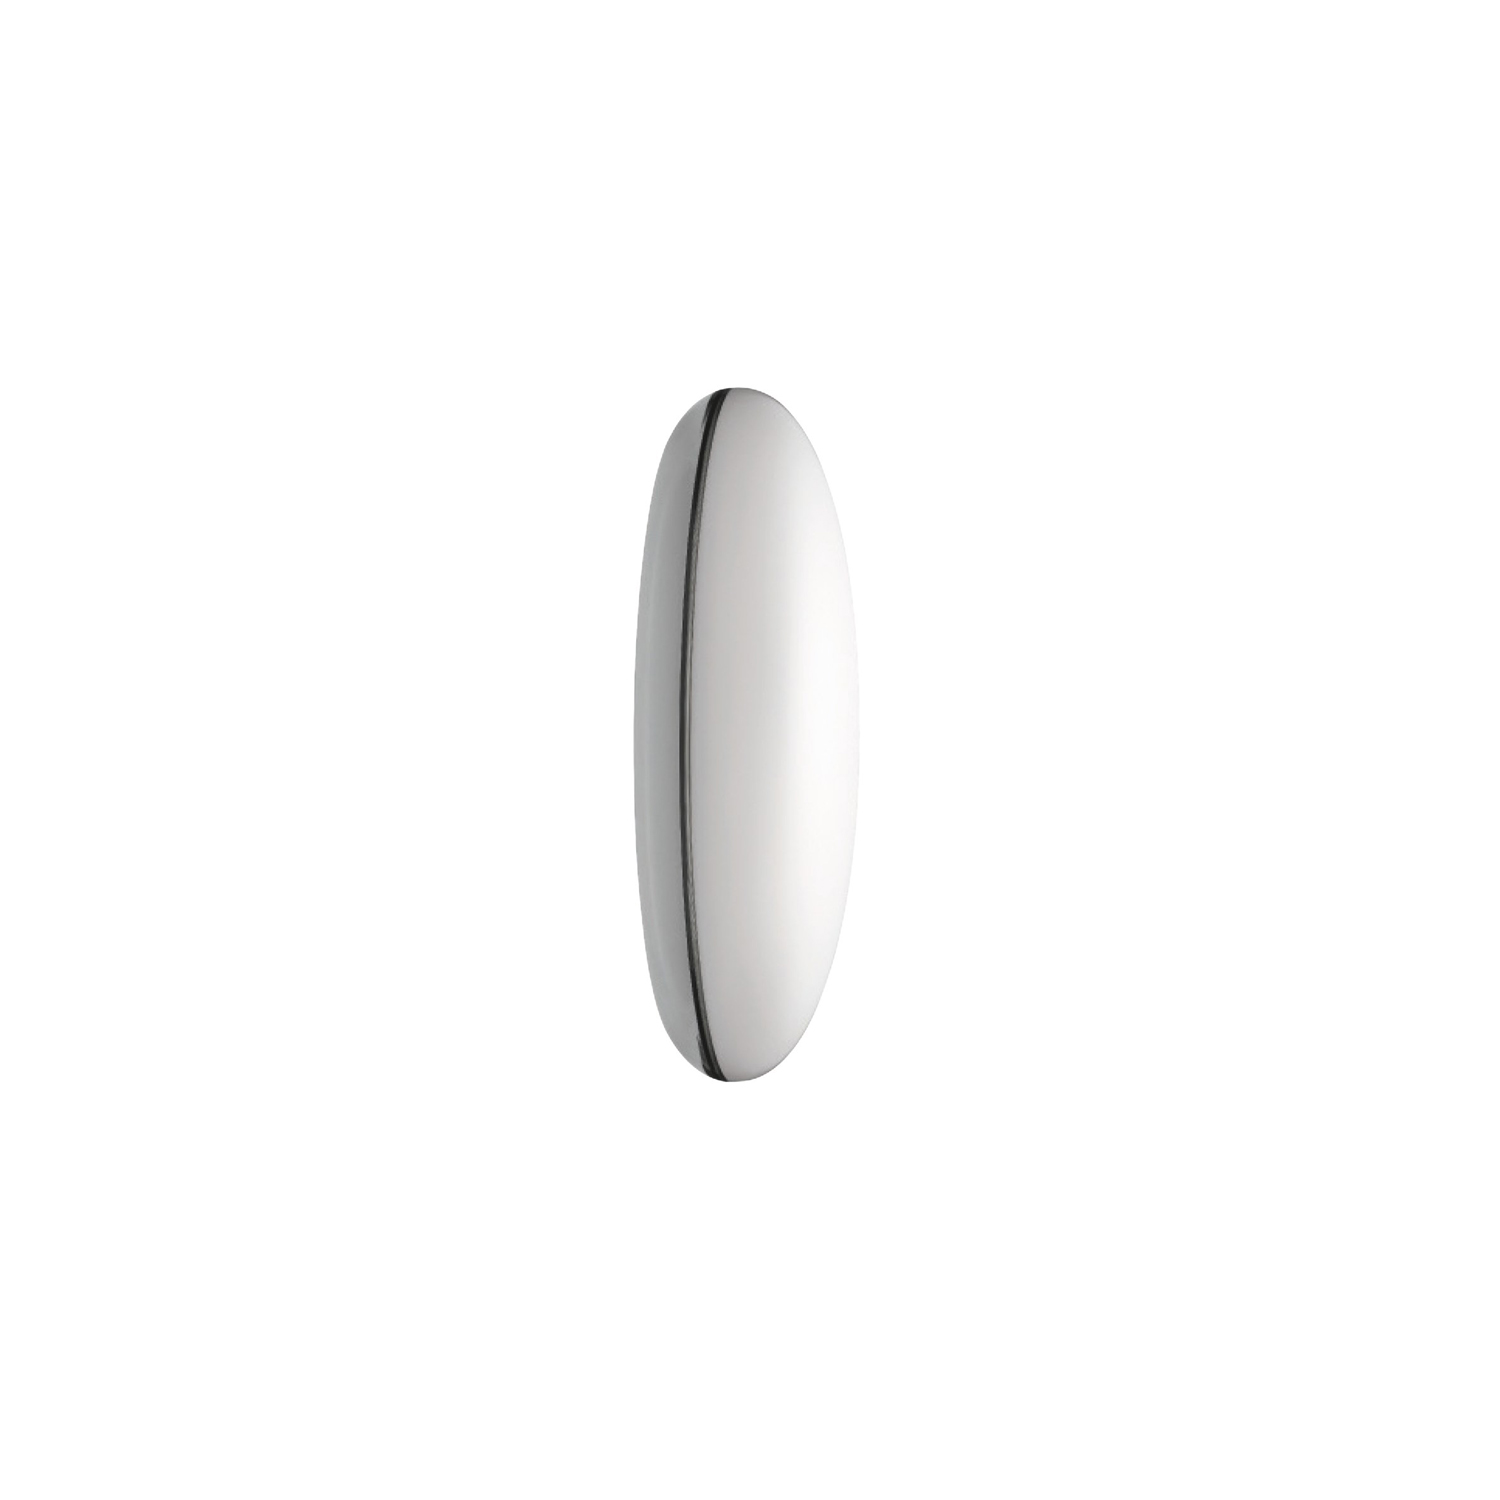 Silverback Wall Light - The fixture emits diffused light.‎ The opal curved diffuser provides a soft and comfortable spatial lighting, and the metallised rear half of the product produces a decorative halo-like illumination on the ceiling or wall surface.‎ The metallised surface also creates a mirror effect, reflecting the texture, colour or material of the installation surface.‎